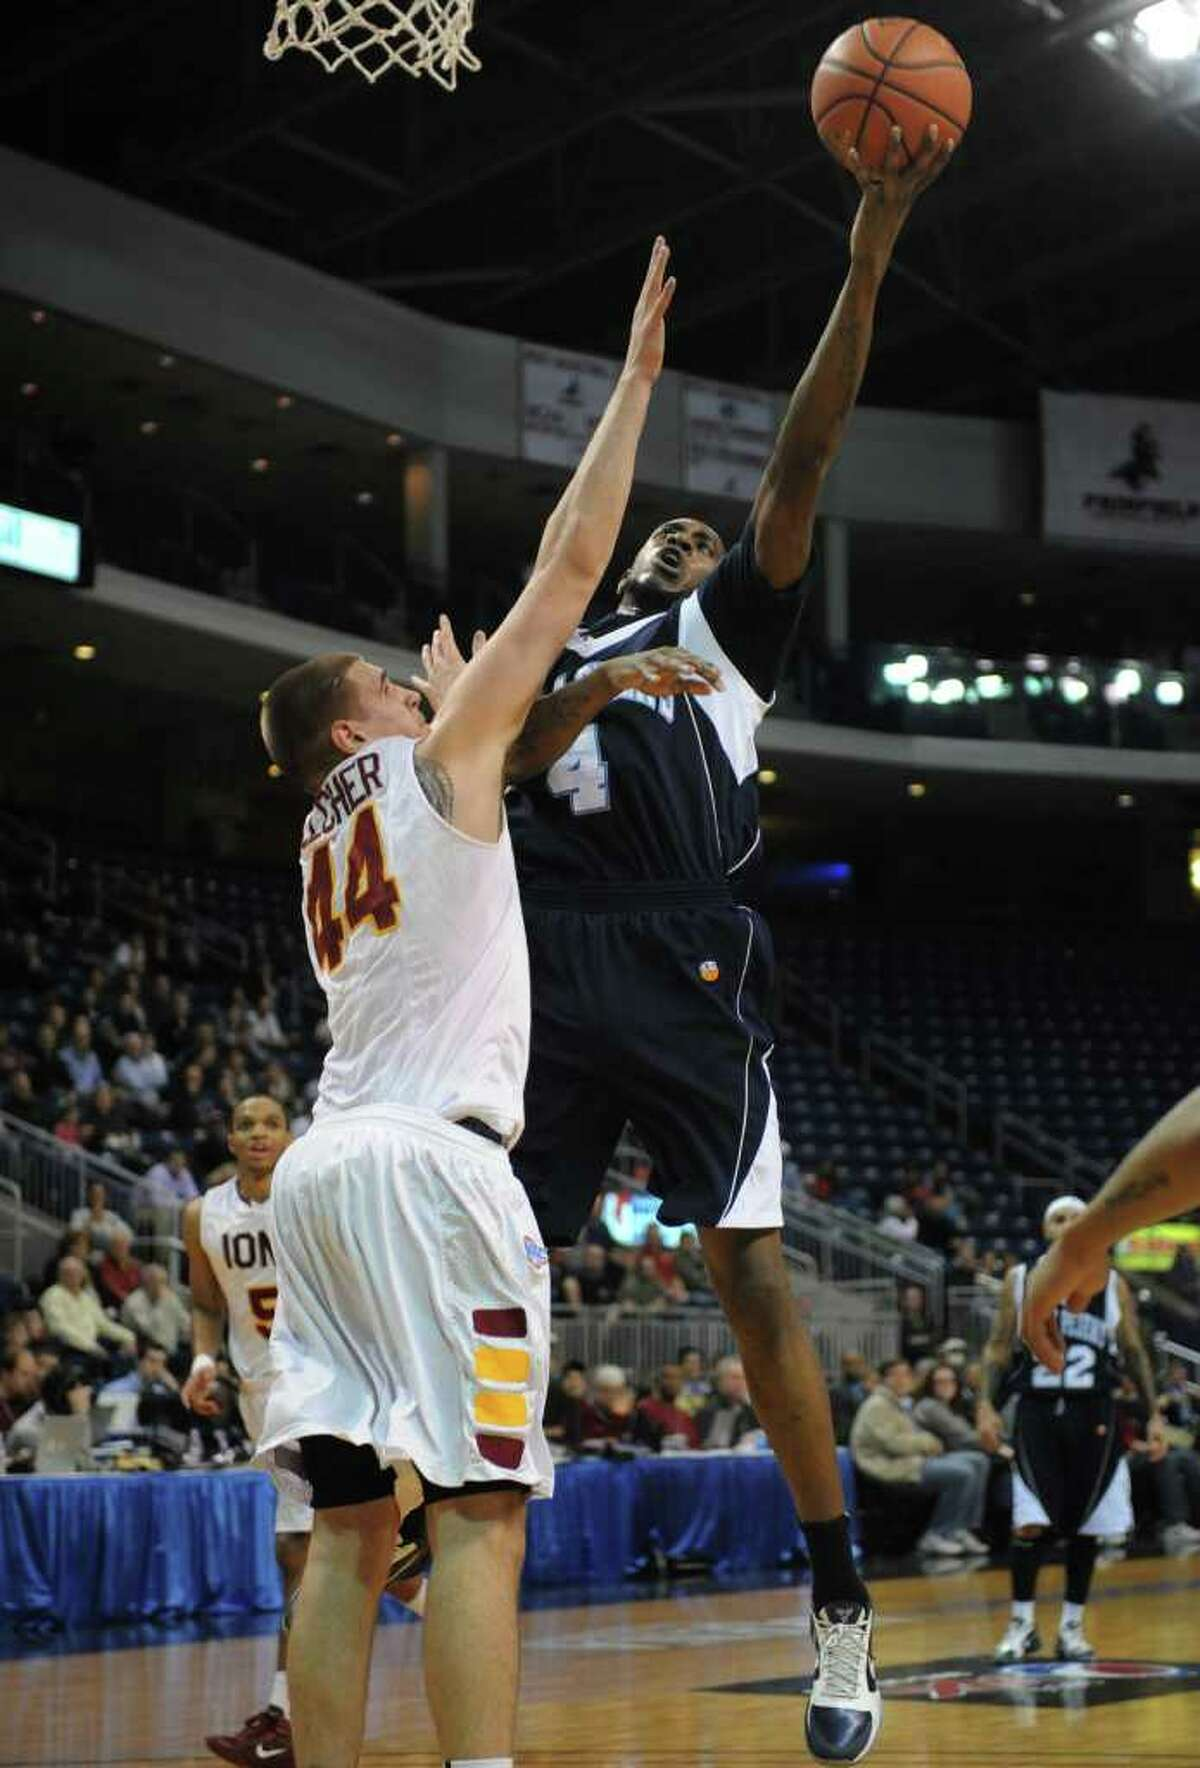 St. Peter's Ryan Bacon shoots over Iona's Chris Pelcher during the MAAC championship game at the Webster Bank Arena at Harbor Yard in Bridgeport on Monday, March 7, 2011.